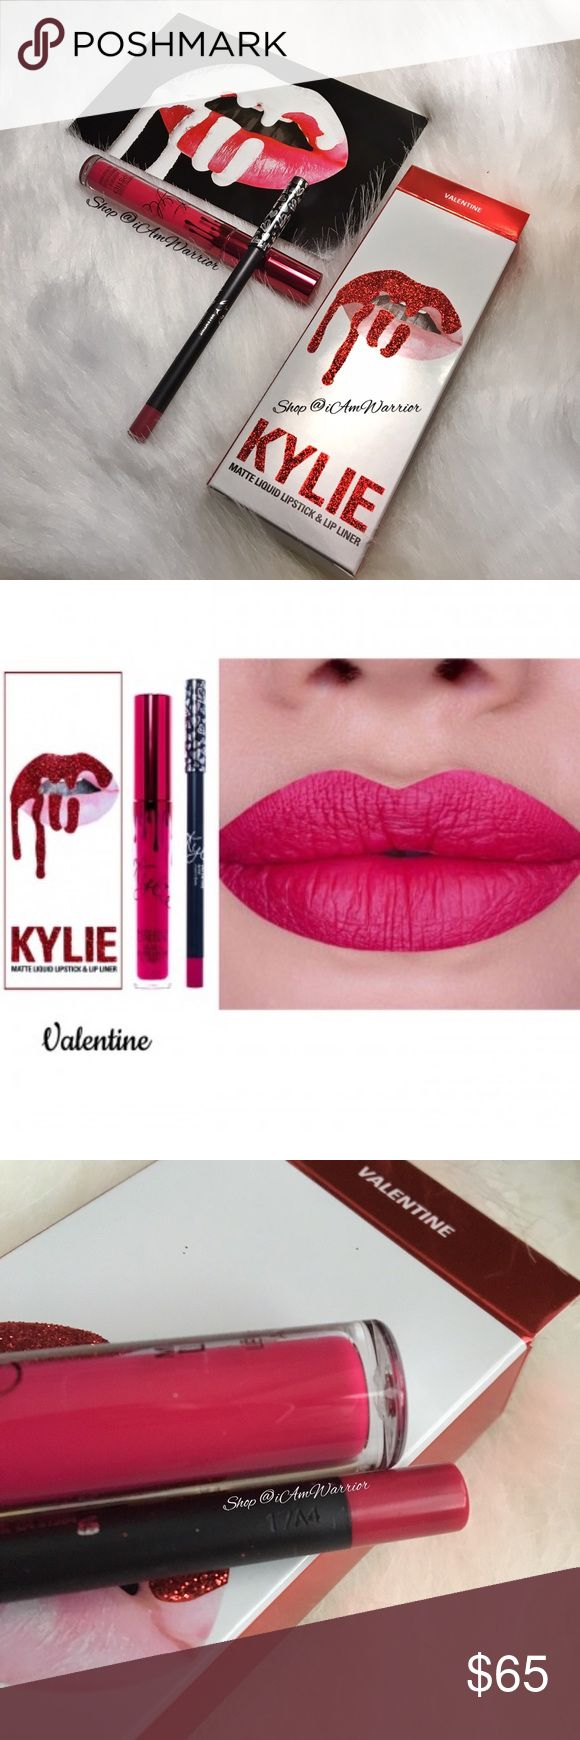 💋AUTHENTIC Kylie Cosmetics Valentine Lipkit Guaranteed authentic, unused, not swatched, limited edition Valentine Lipkit  purchased directly from Kylie Cosmetics as receipt shows. See my own photos for proof of authenticity/purchase. Contains full size matte lipstick & lipliner in box.  Comes with Kylie postcard & original mailing box. Trusted seller, suggested user. Drama free buyers only please. Ships same/next day. Please read updated bio regarding closet policies prior to any inquiries…